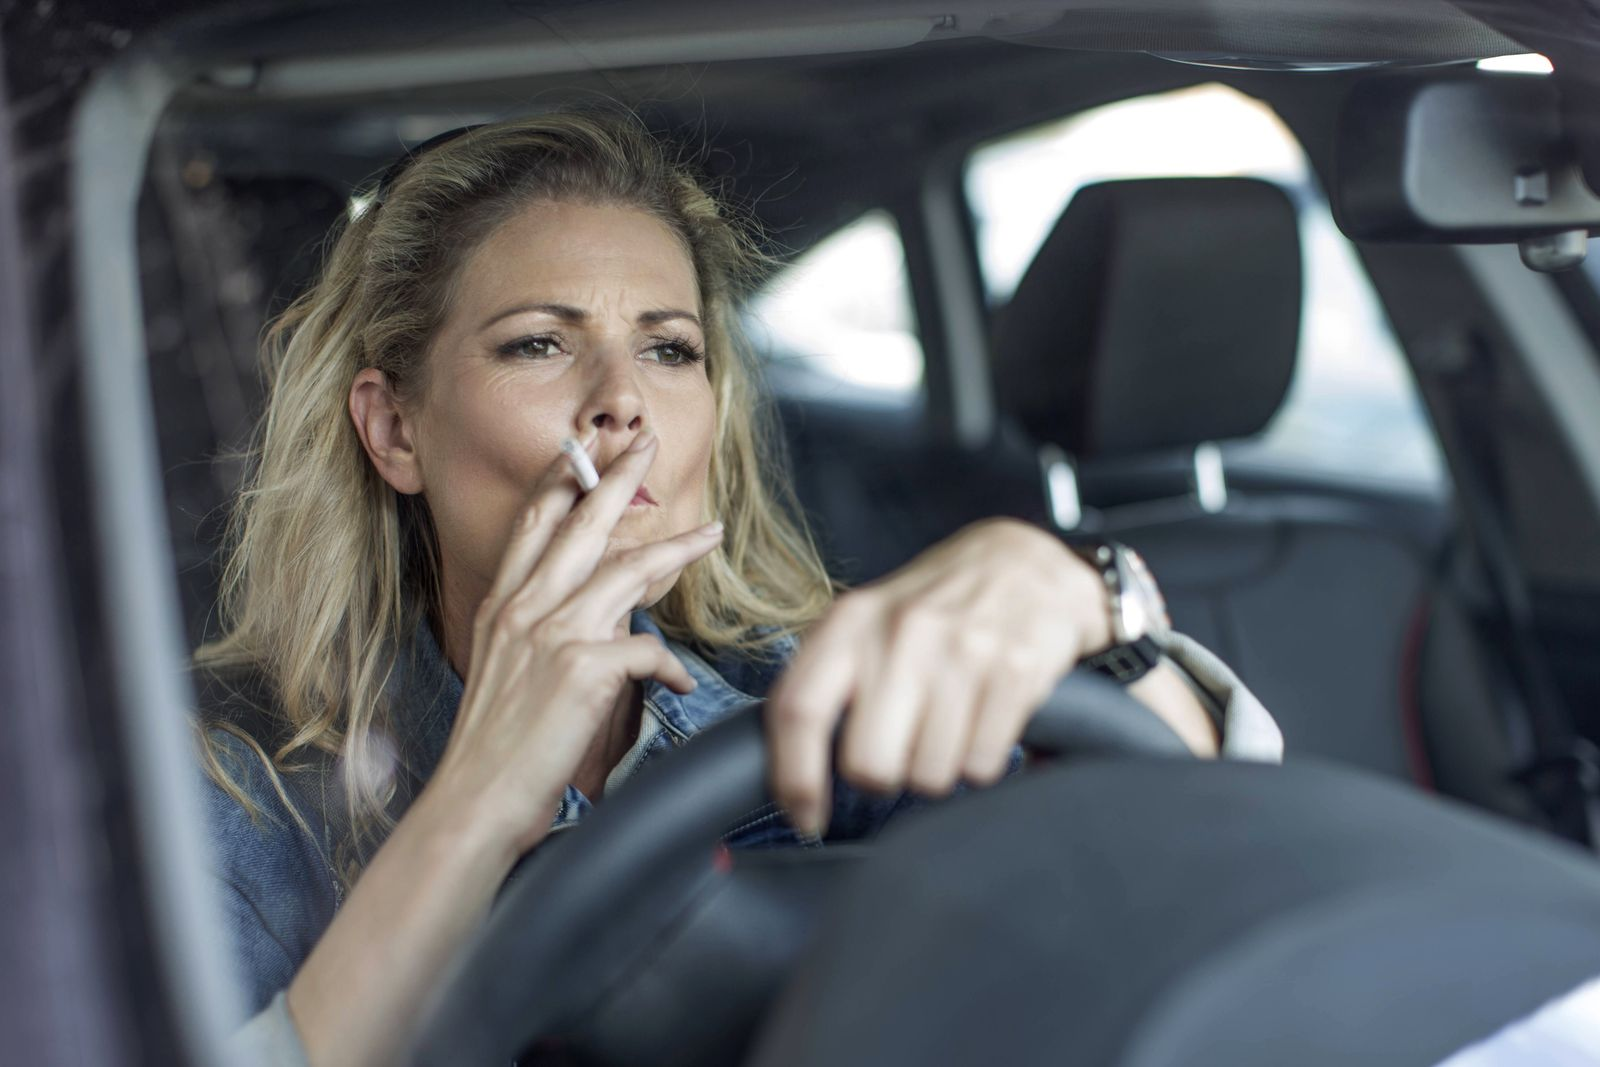 Serious woman in car smoking a cigarette model released Symbolfoto PUBLICATIONxINxGERxSUIxAUTxHUNxONLY ZEF004680